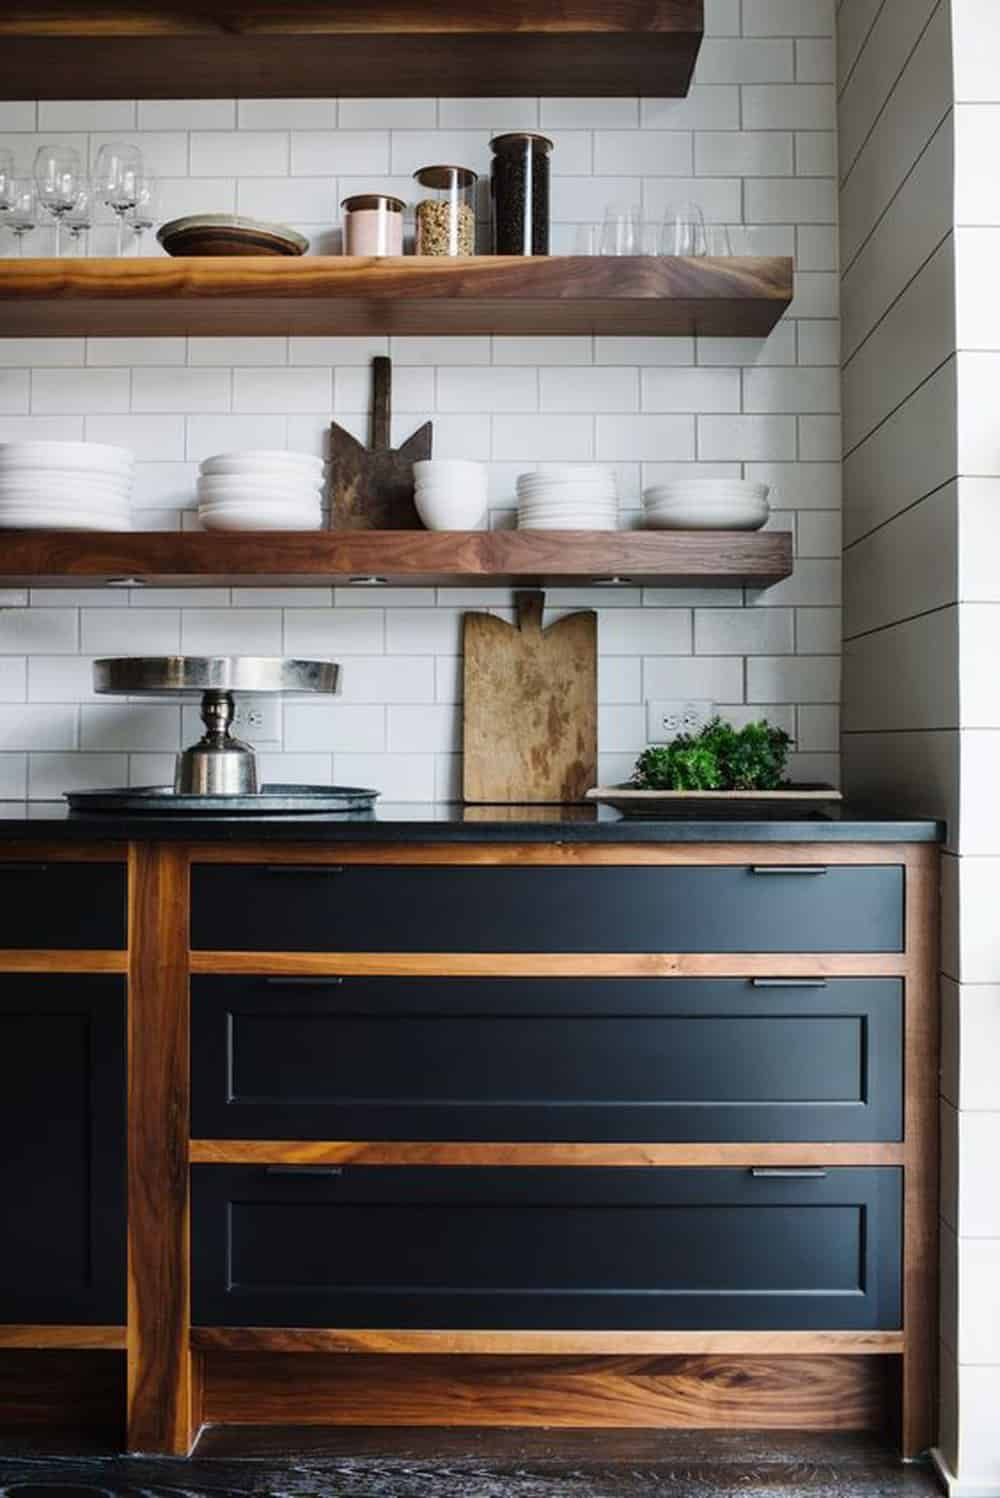 Kitchen design trends 2018 centered by design - Kitchen organization ideas small spaces paint ...